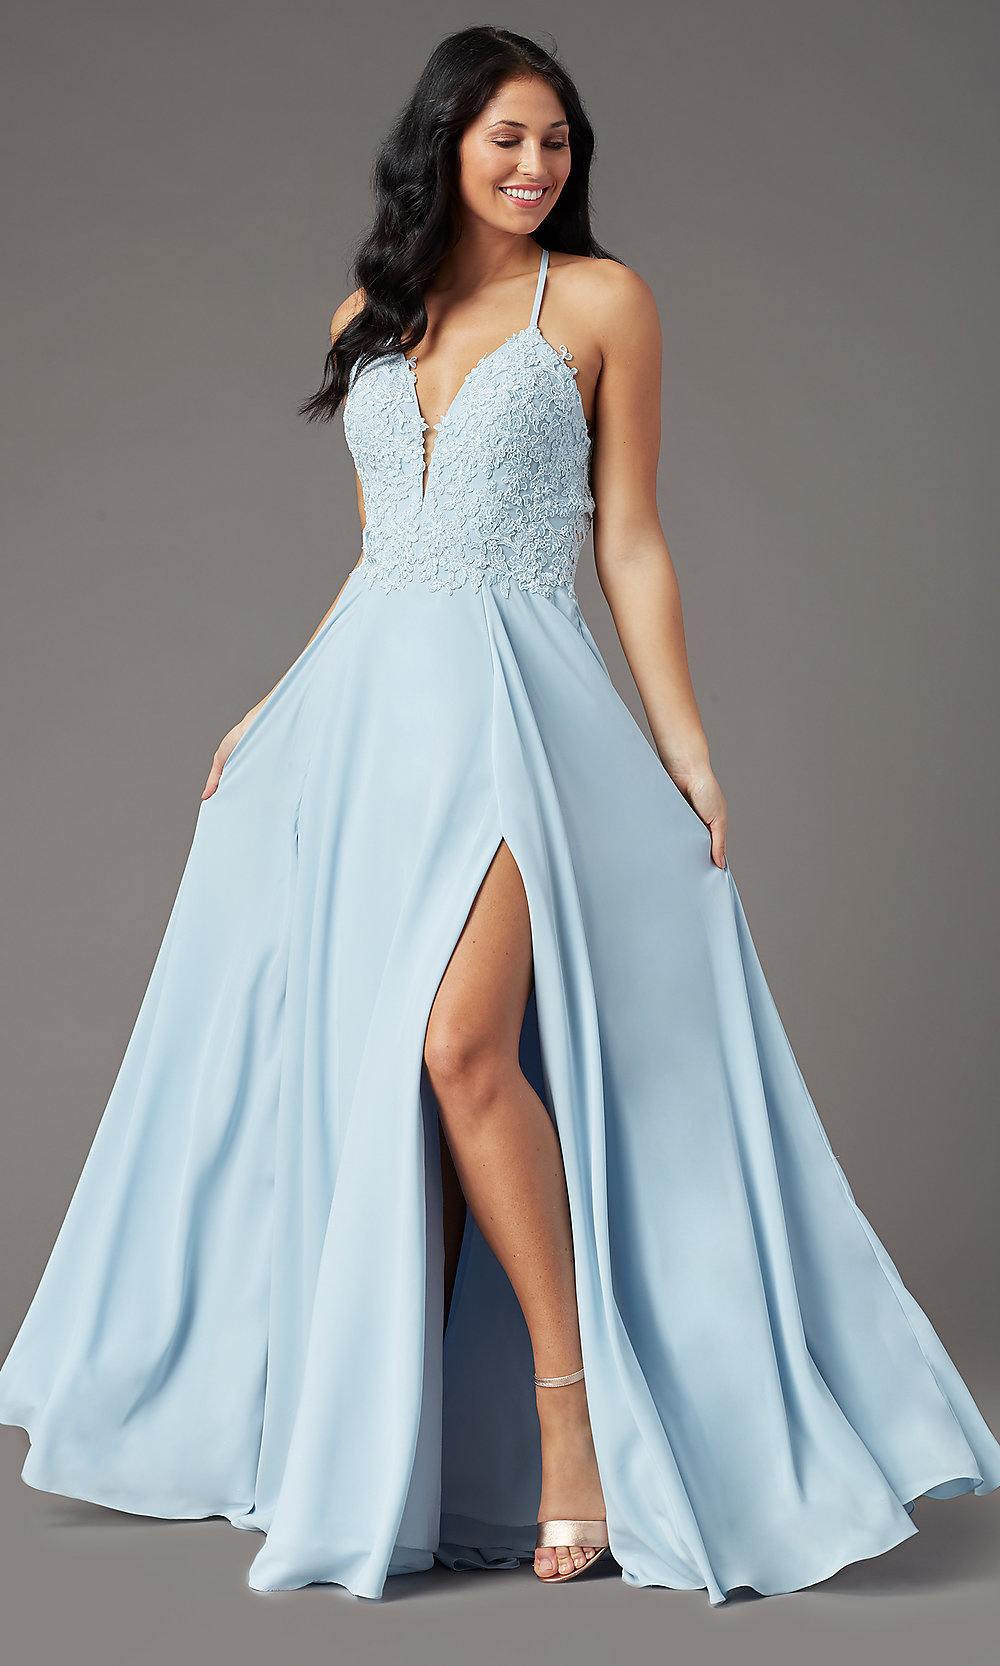 Sweep Train Strapless Sequined Ball-Gown Prom Dresses